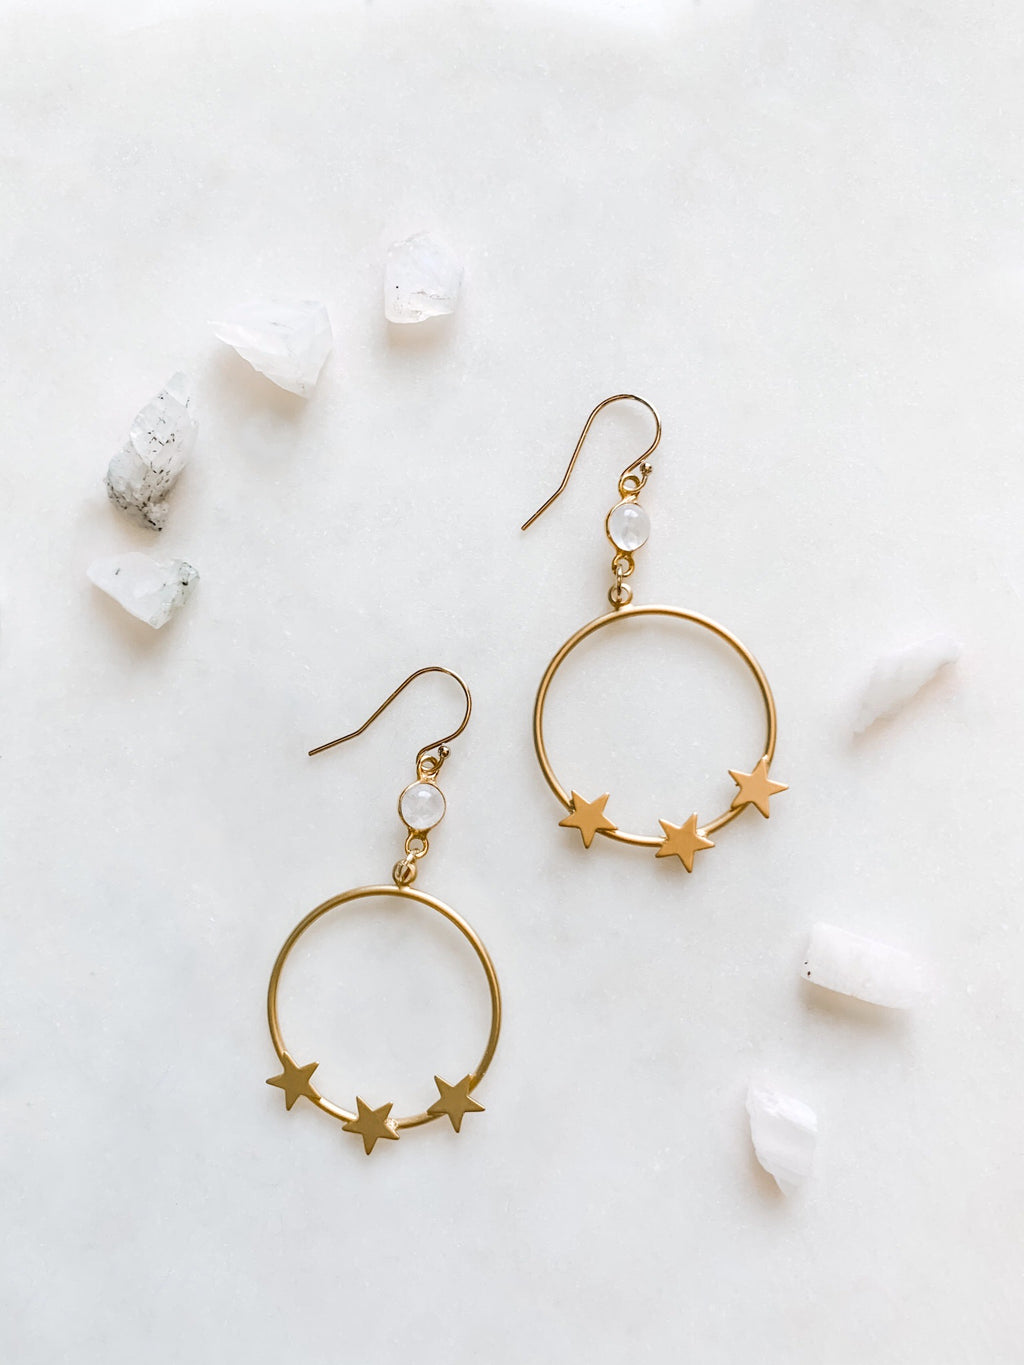 Star Hoop Earrings with Moonstone - The Pretty Eclectic